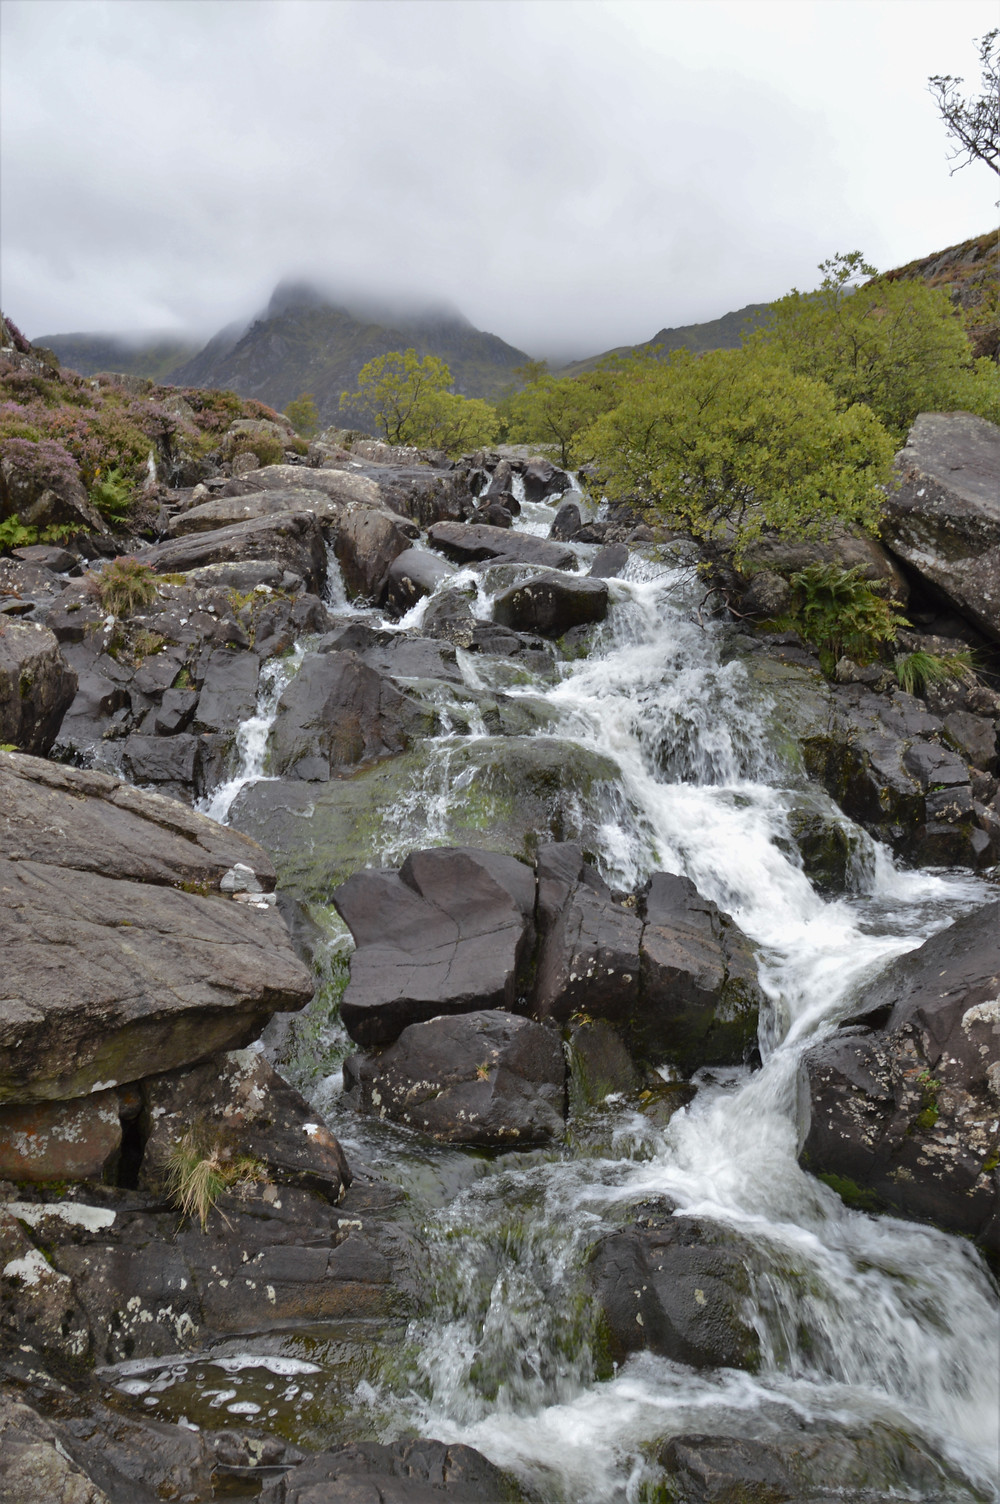 The water of Llyn Idwal cascading over rocks on the trail leading to Devil's Kitchen in Snowdonia